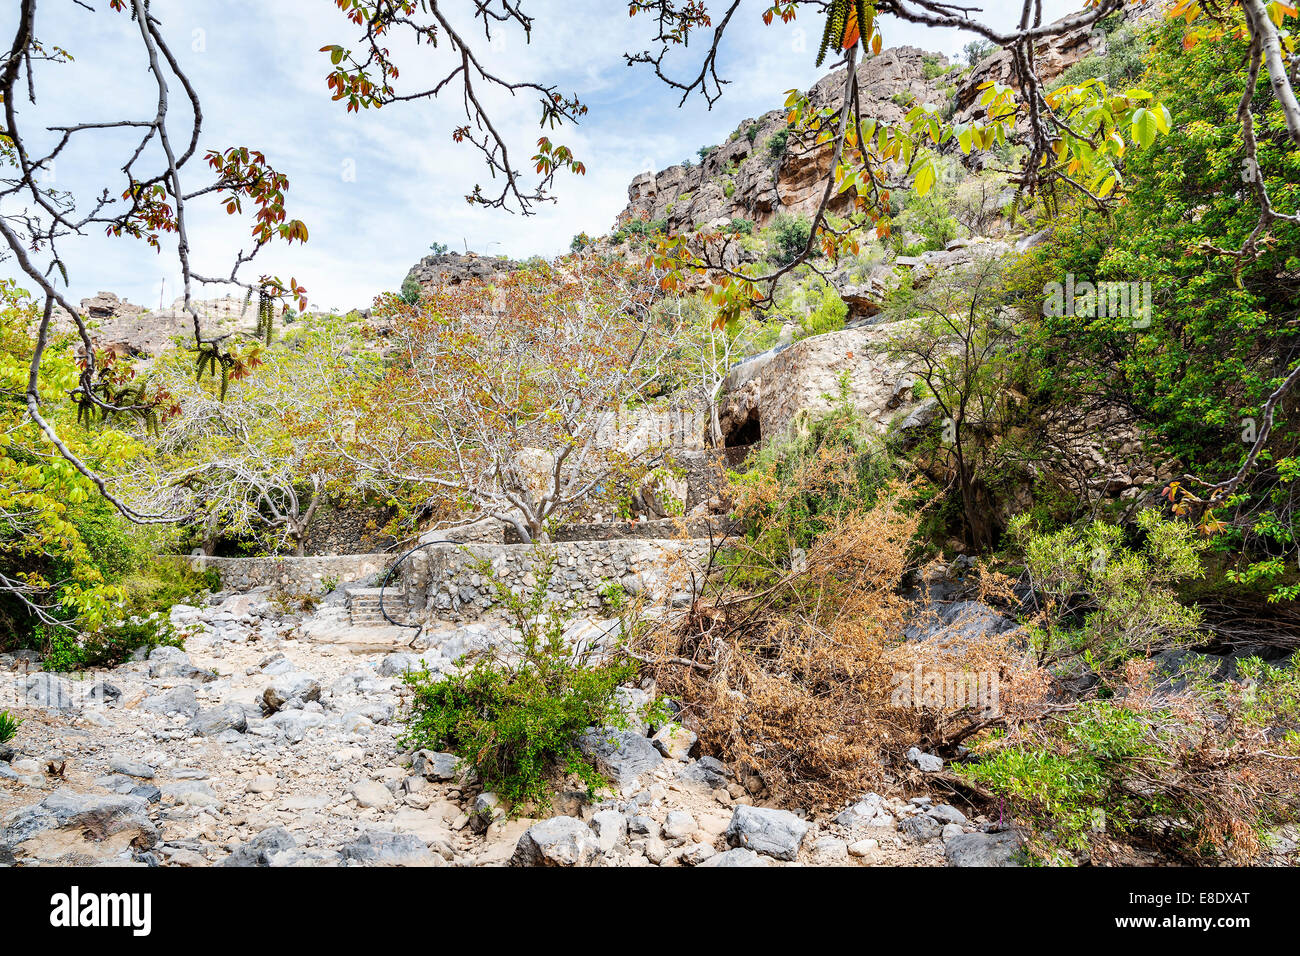 Image of riverbed Wadi Bani Habib in Oman - Stock Image